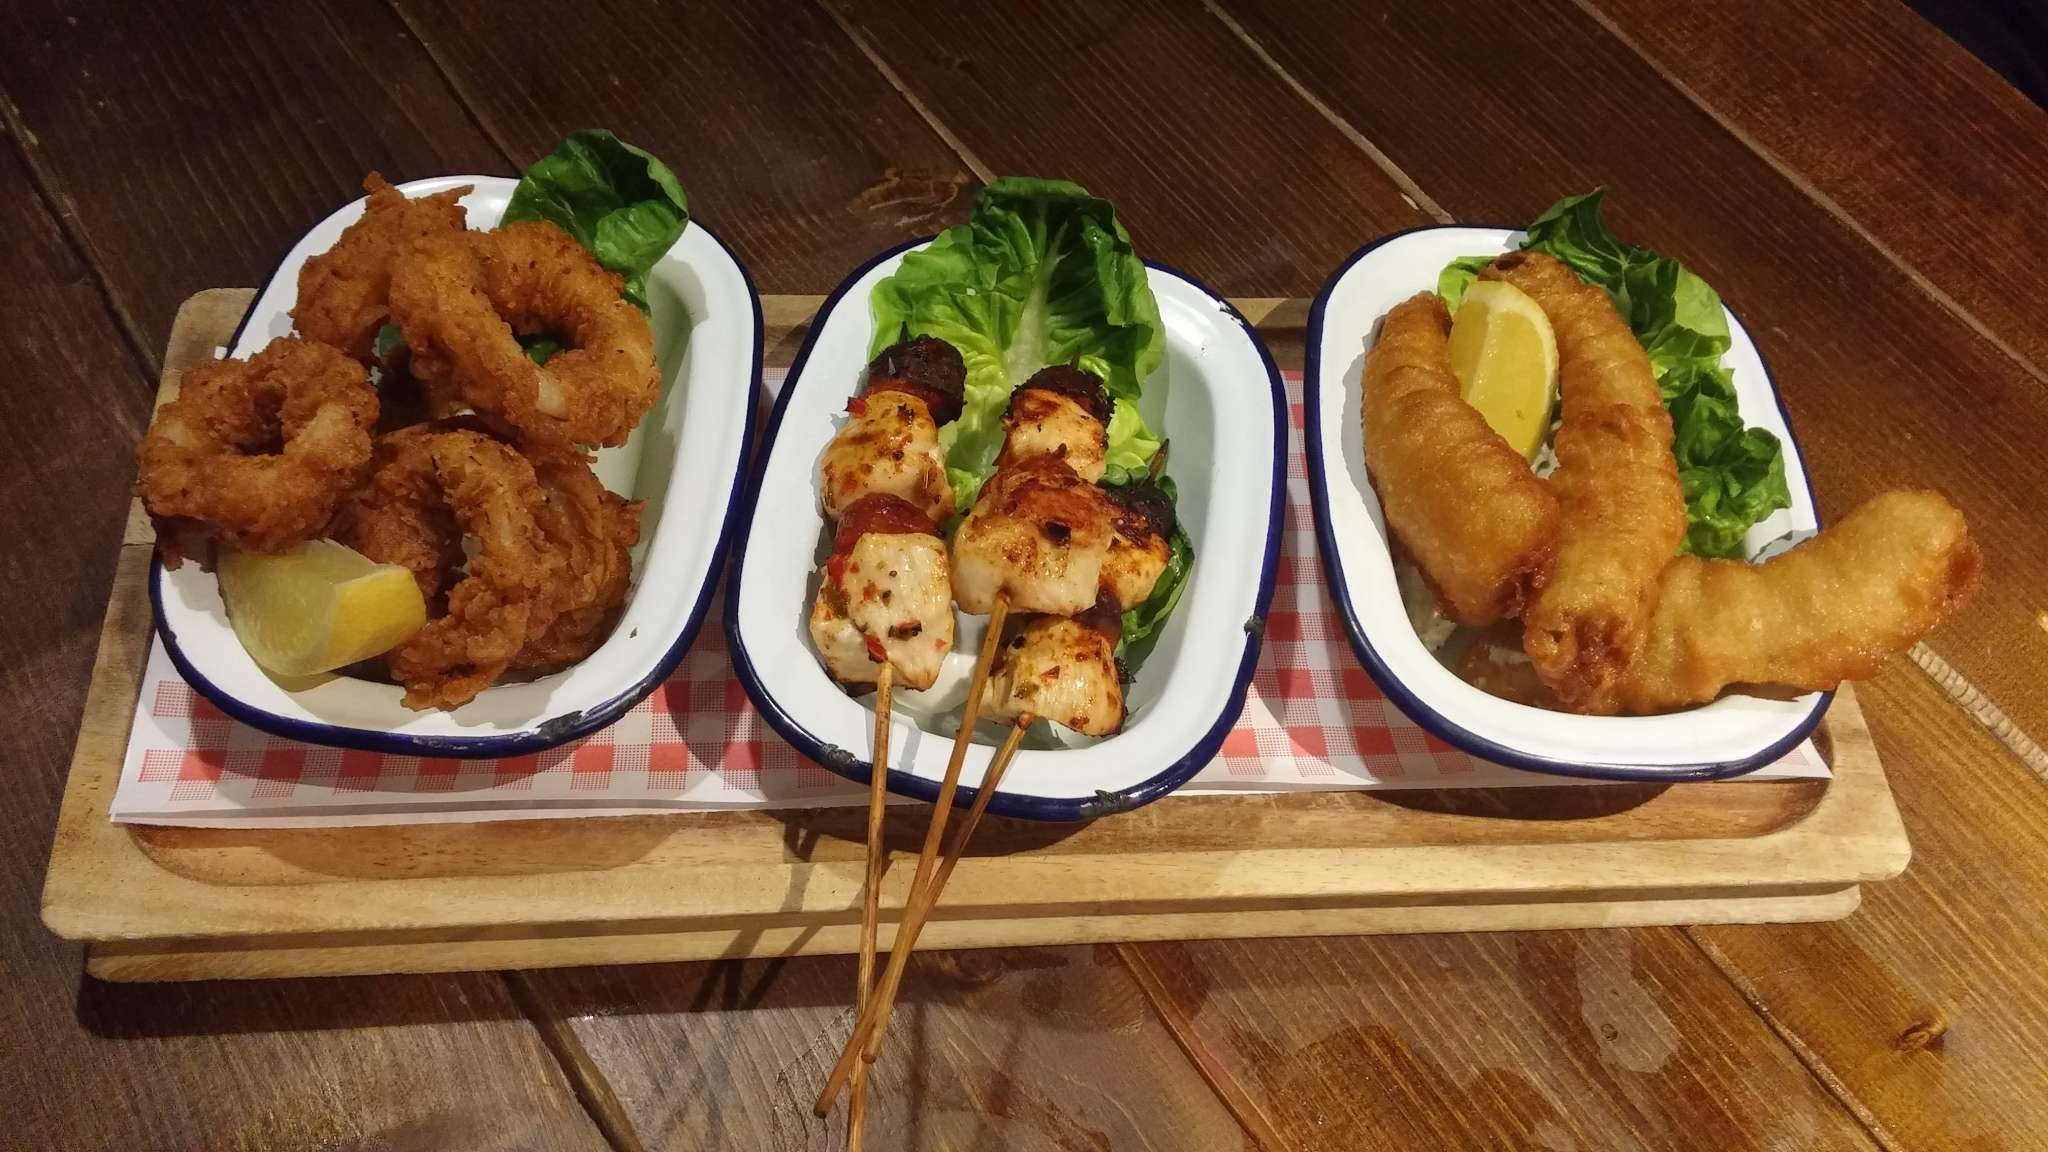 L-R: Calamari, Chicken, Fish Skewers